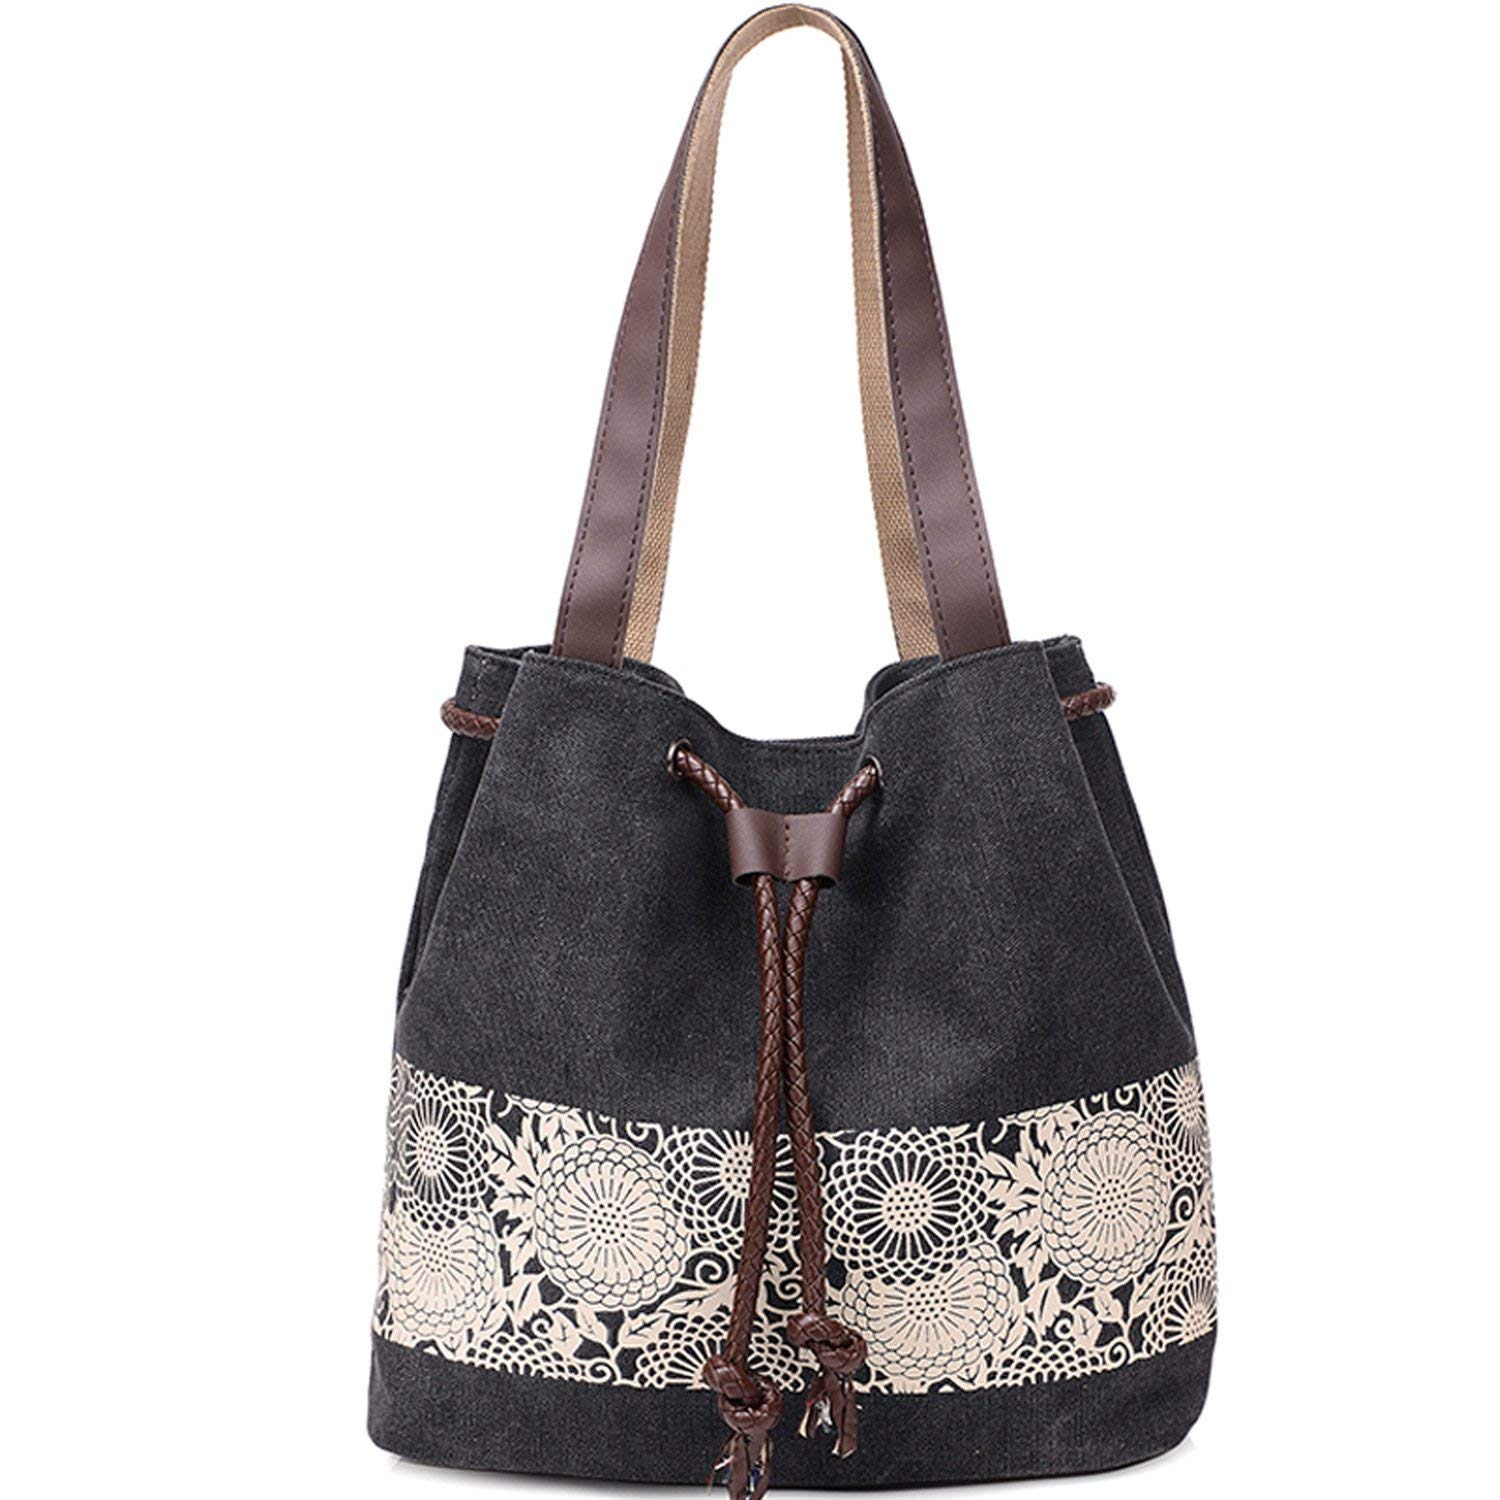 Canvas Tote Bag Casual Handbag Retro Printing Shoulder Bag For Women Girls Ladies Beach School Travel Bag Roomy Purse